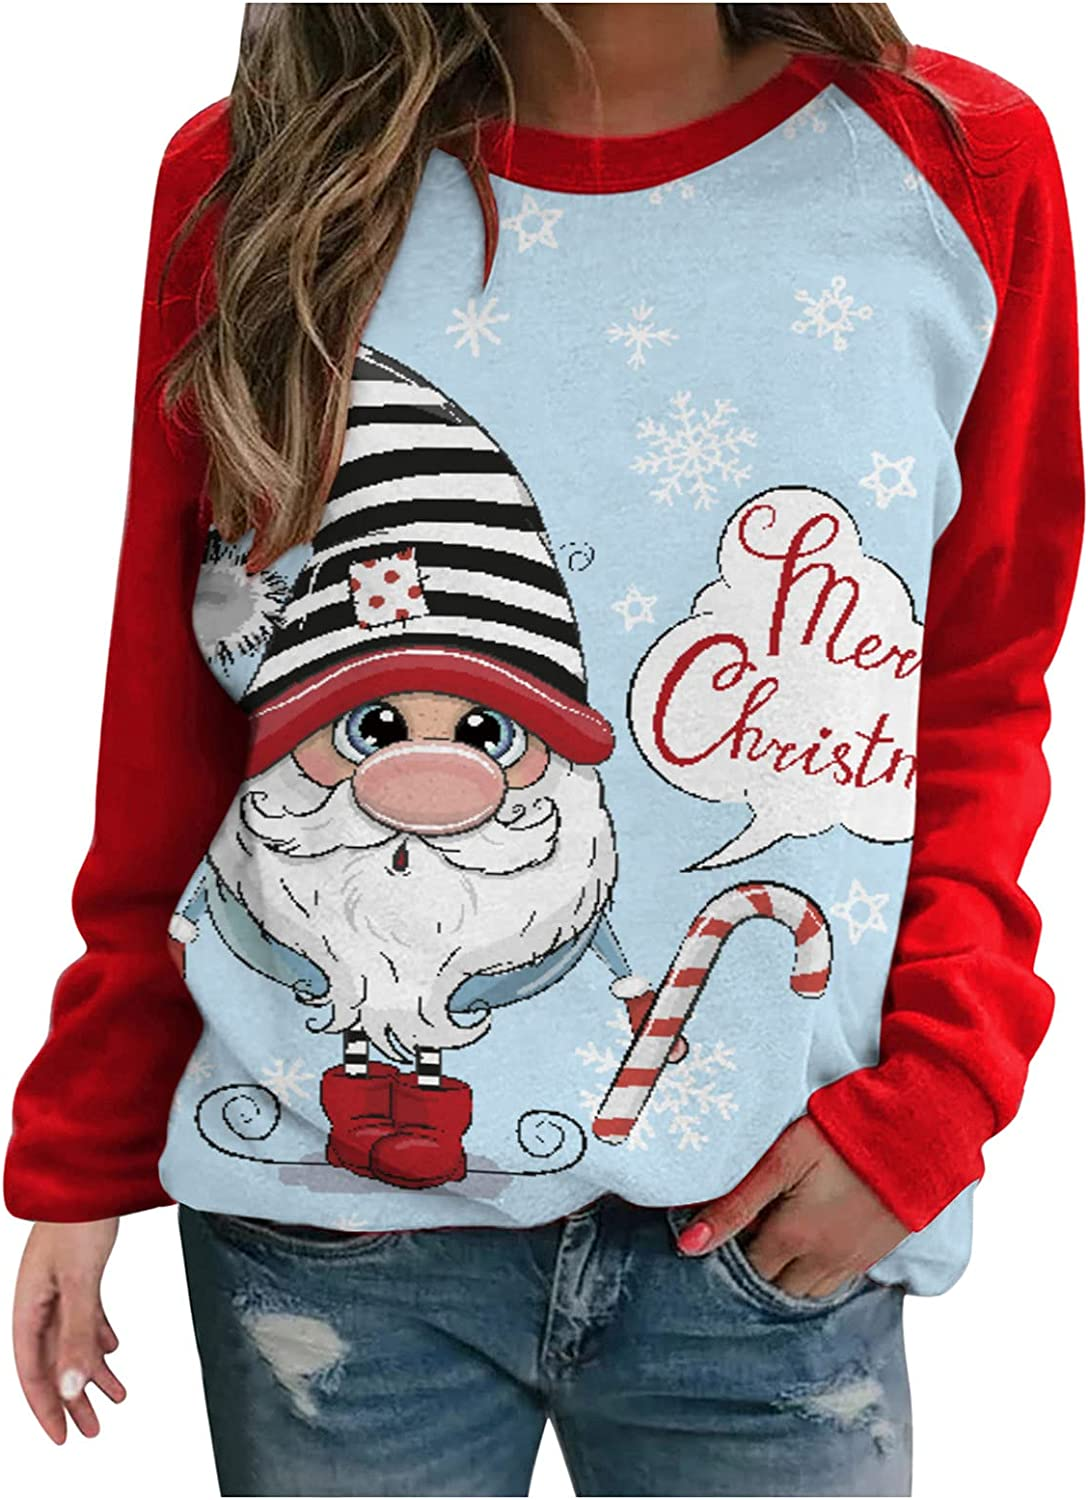 Christmas Shirts for Women Gnome Reindeer Graphic Splicing Tops Long Sleeve Sweater Plus Size Pullover Sweatshirts